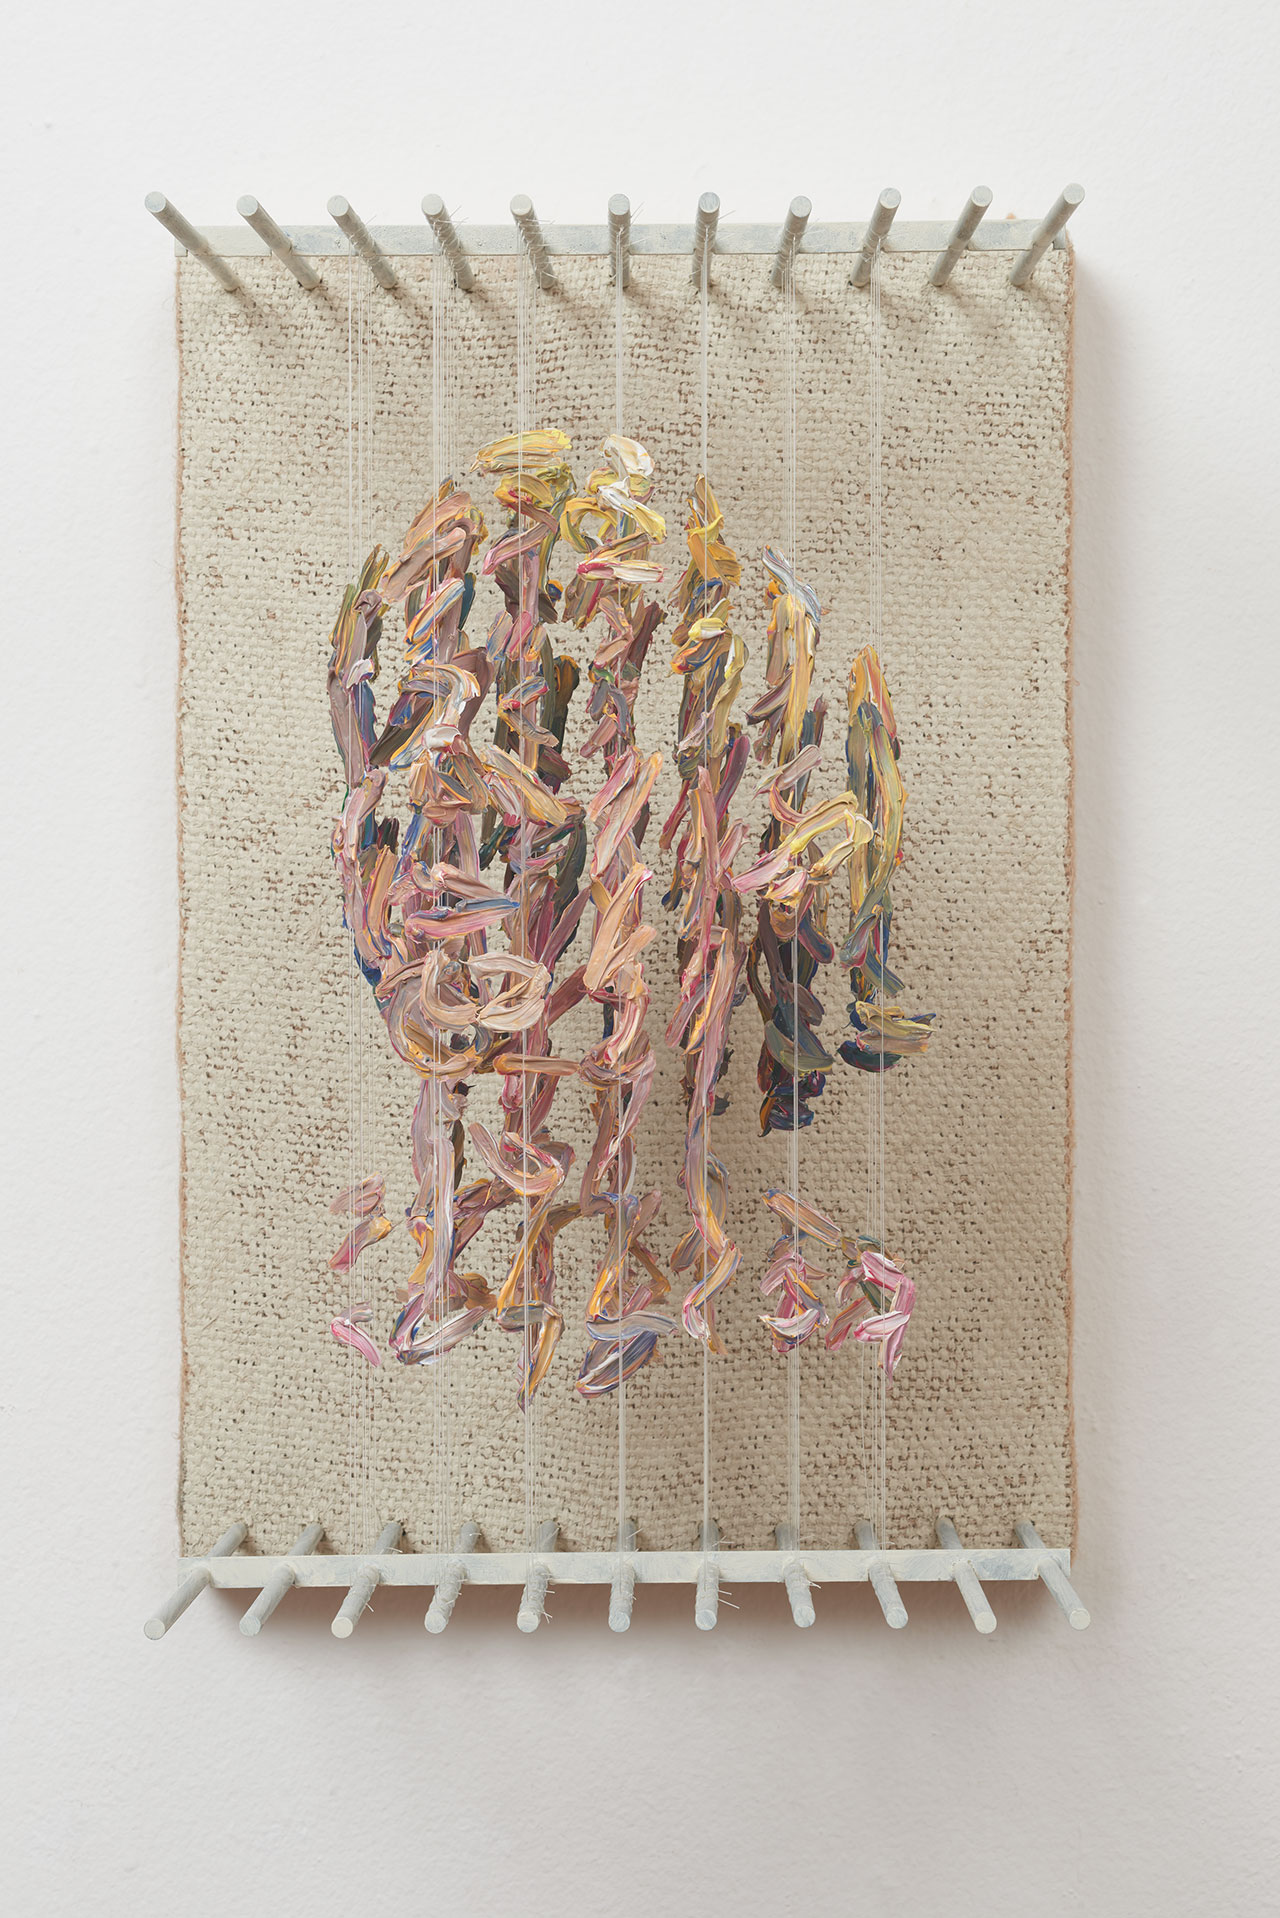 Chris Dorosz, o.h.s, 2017. Acrylic paint on monofilament, metal, jute on board,14 H x 9.25 W x 11D inches. Photo courtesy of Muriel Guépin and the artist.